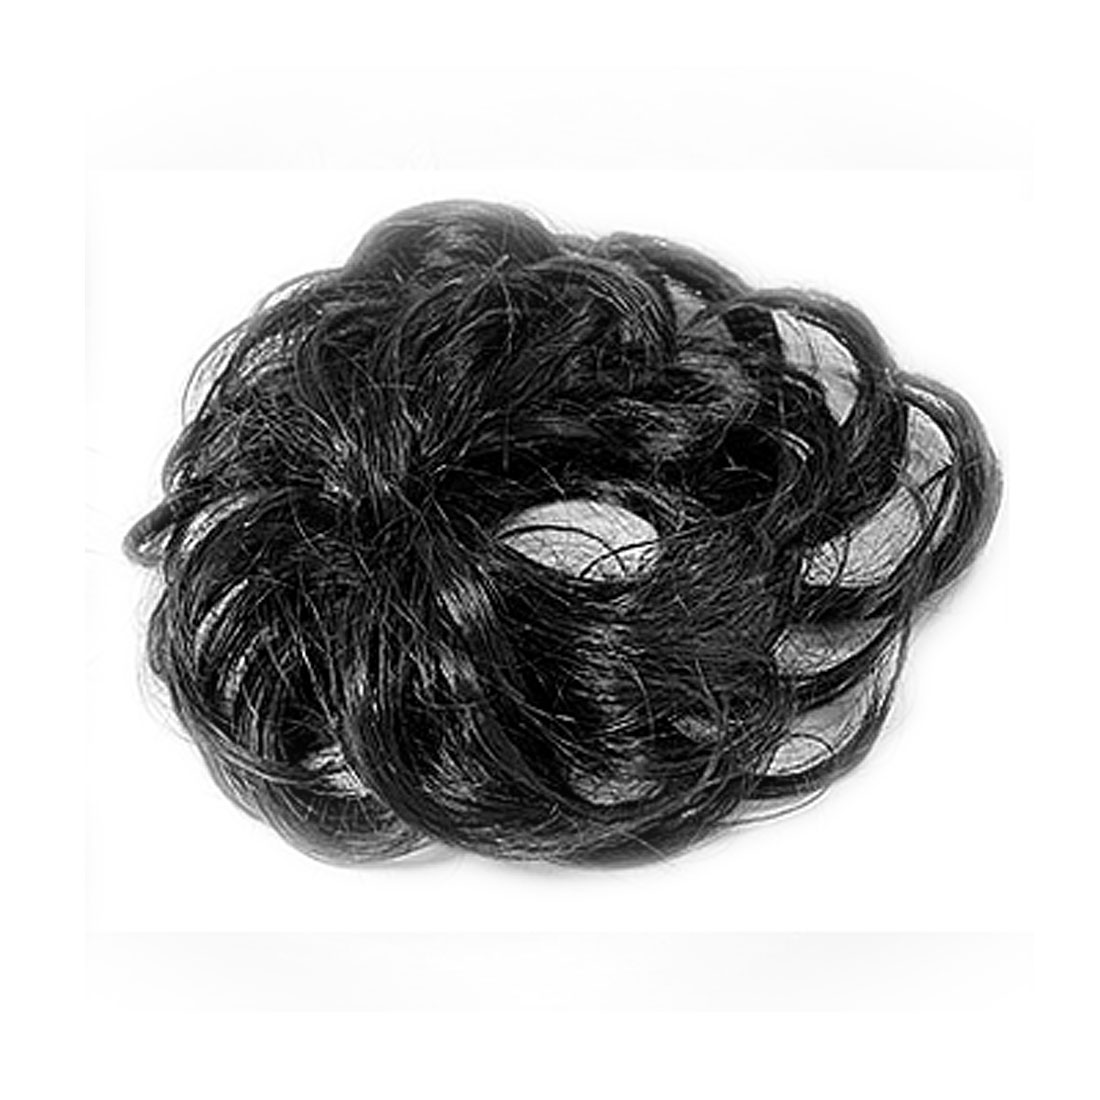 Black Chignon Topknot Bun Hairpiece Wig for Ladies